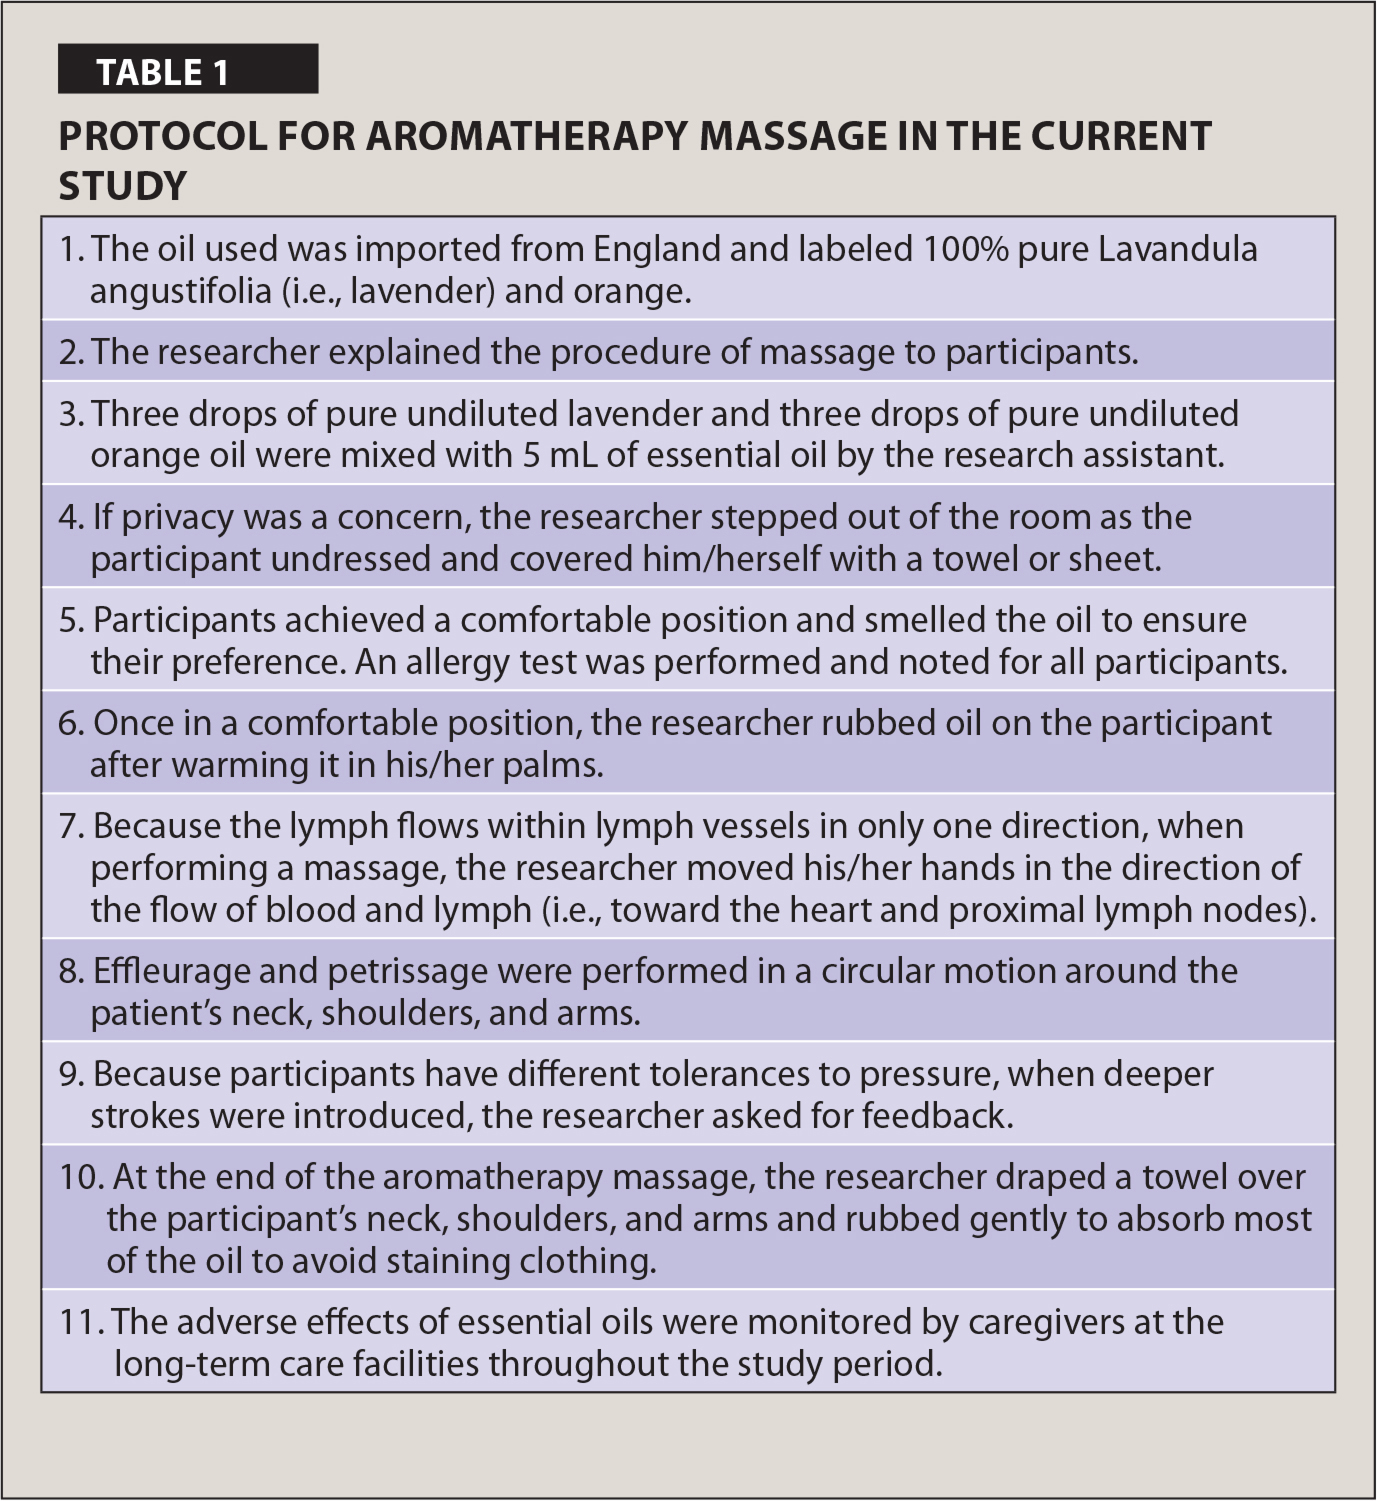 Protocol for Aromatherapy Massage in the Current Study